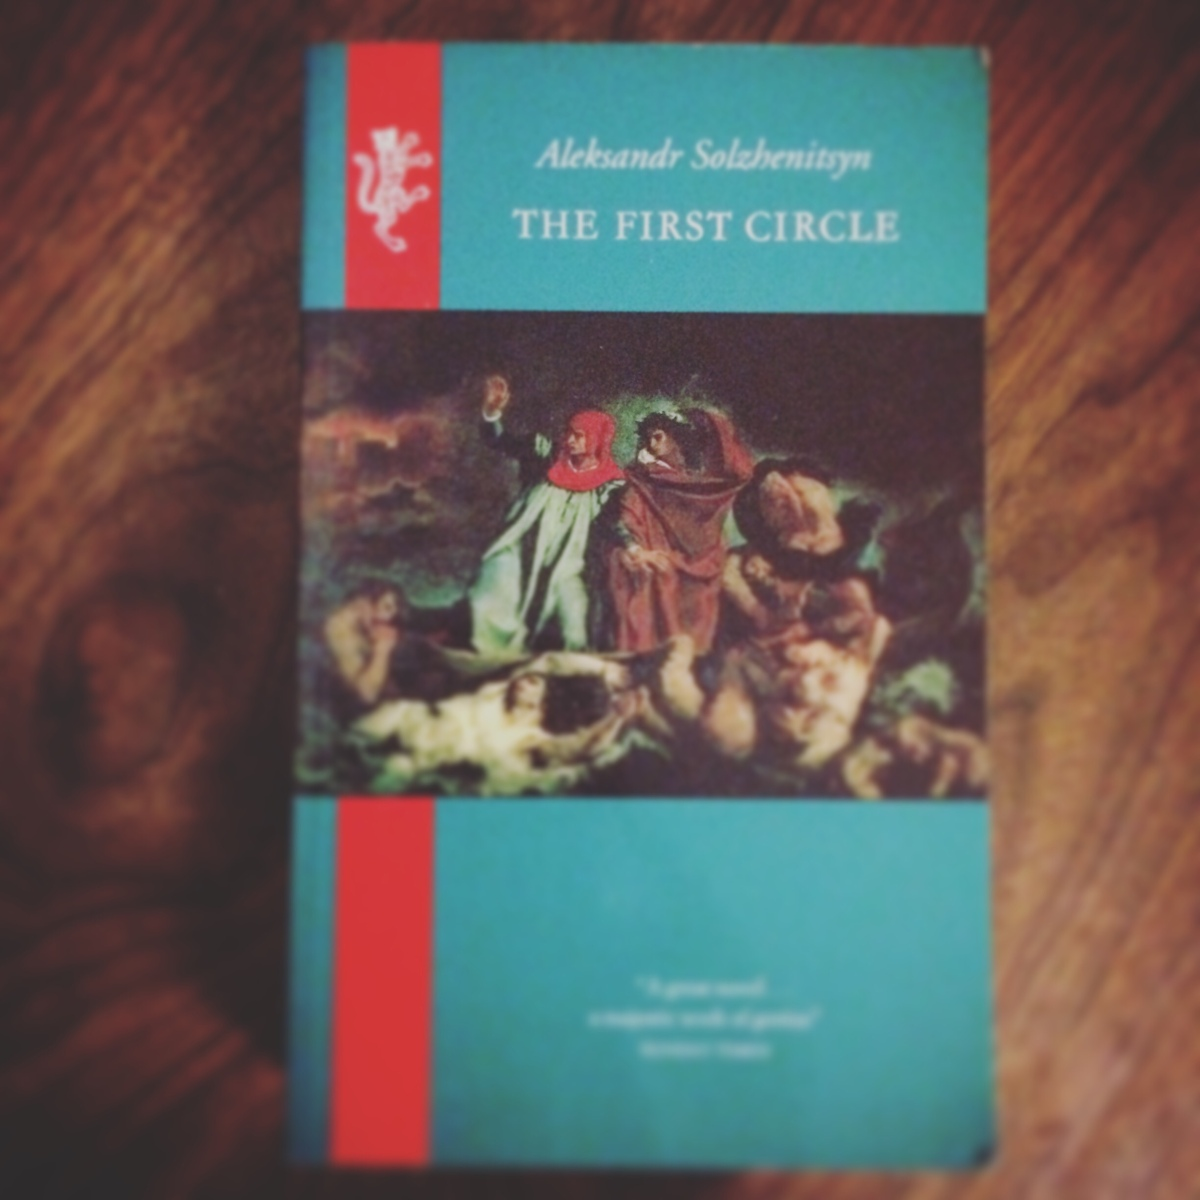 The First Circle by Alexandr Solzhenitsyn